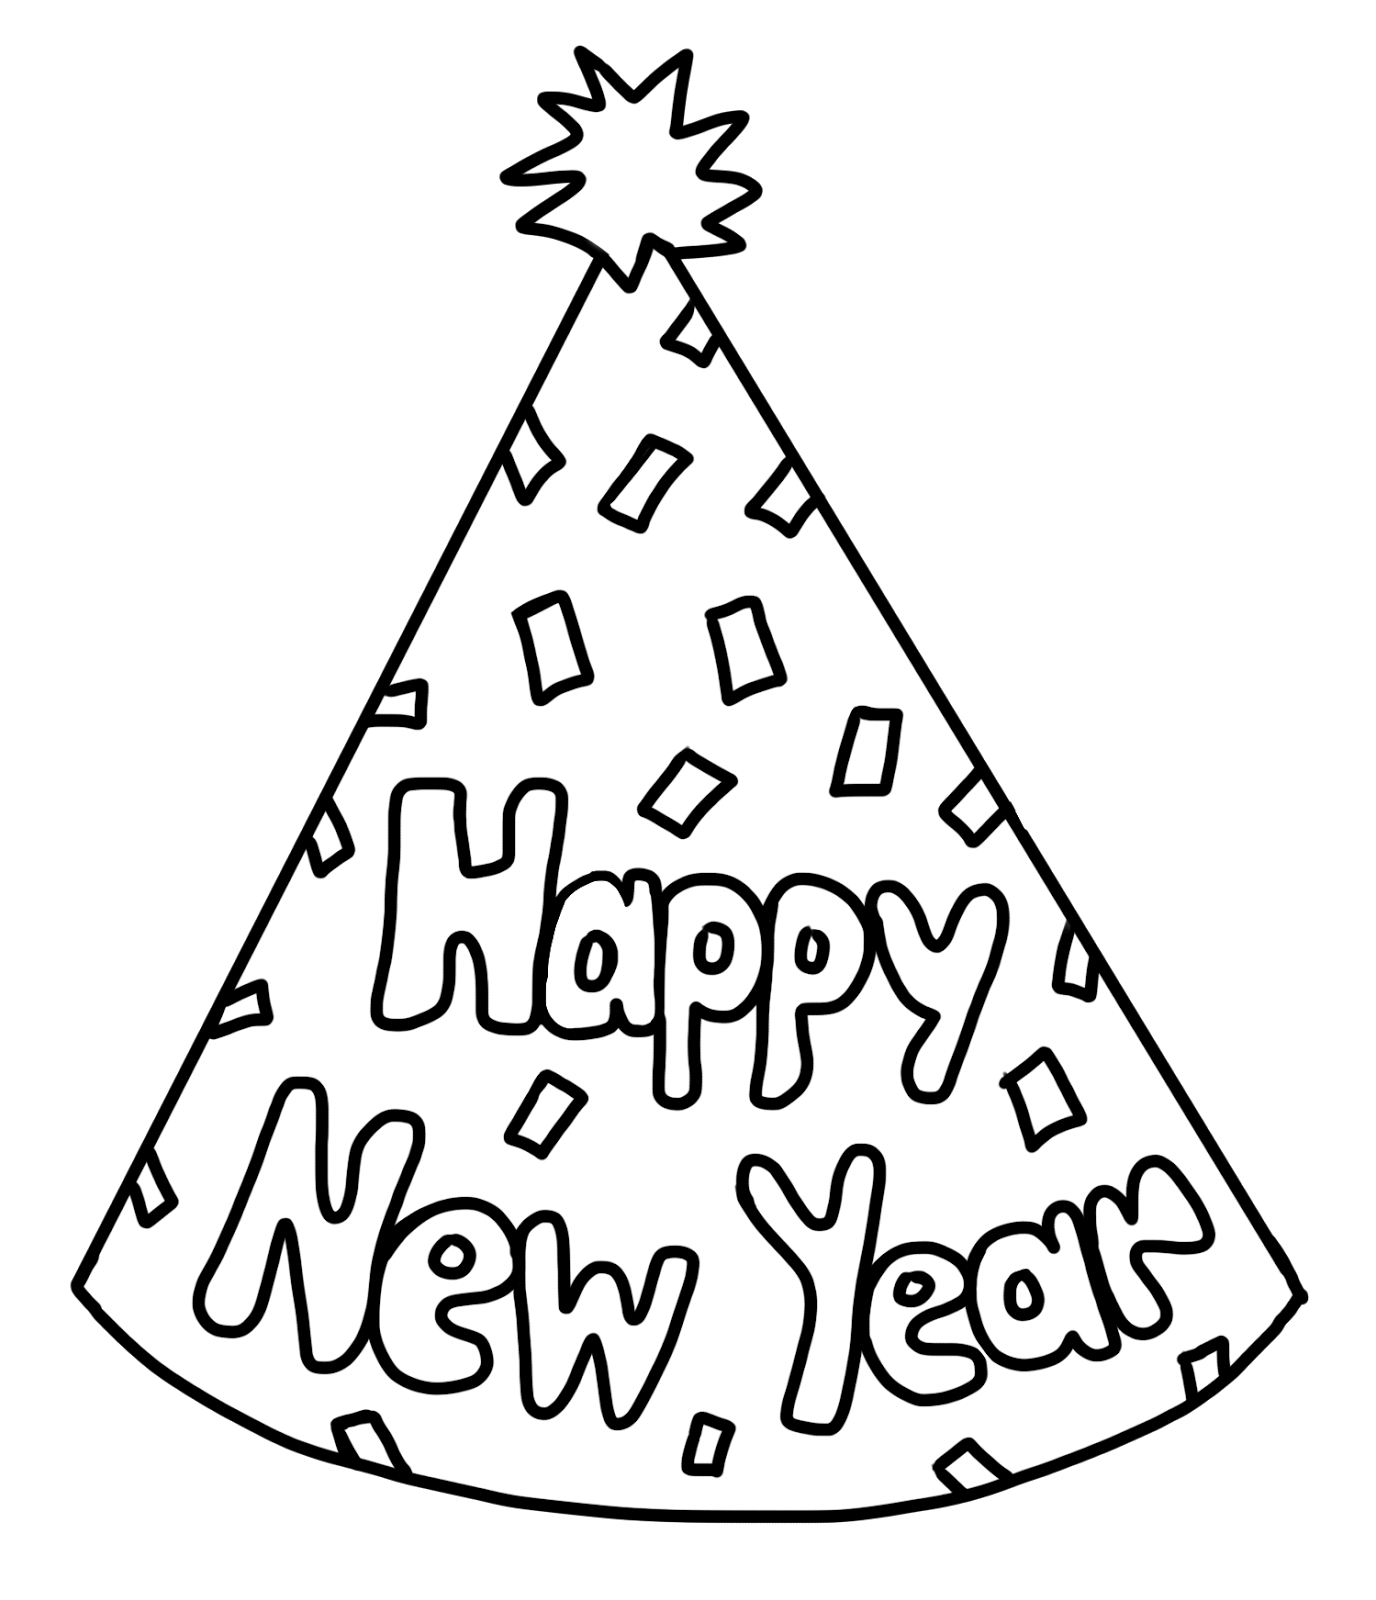 New year clipart black and white 6 » Clipart Portal.